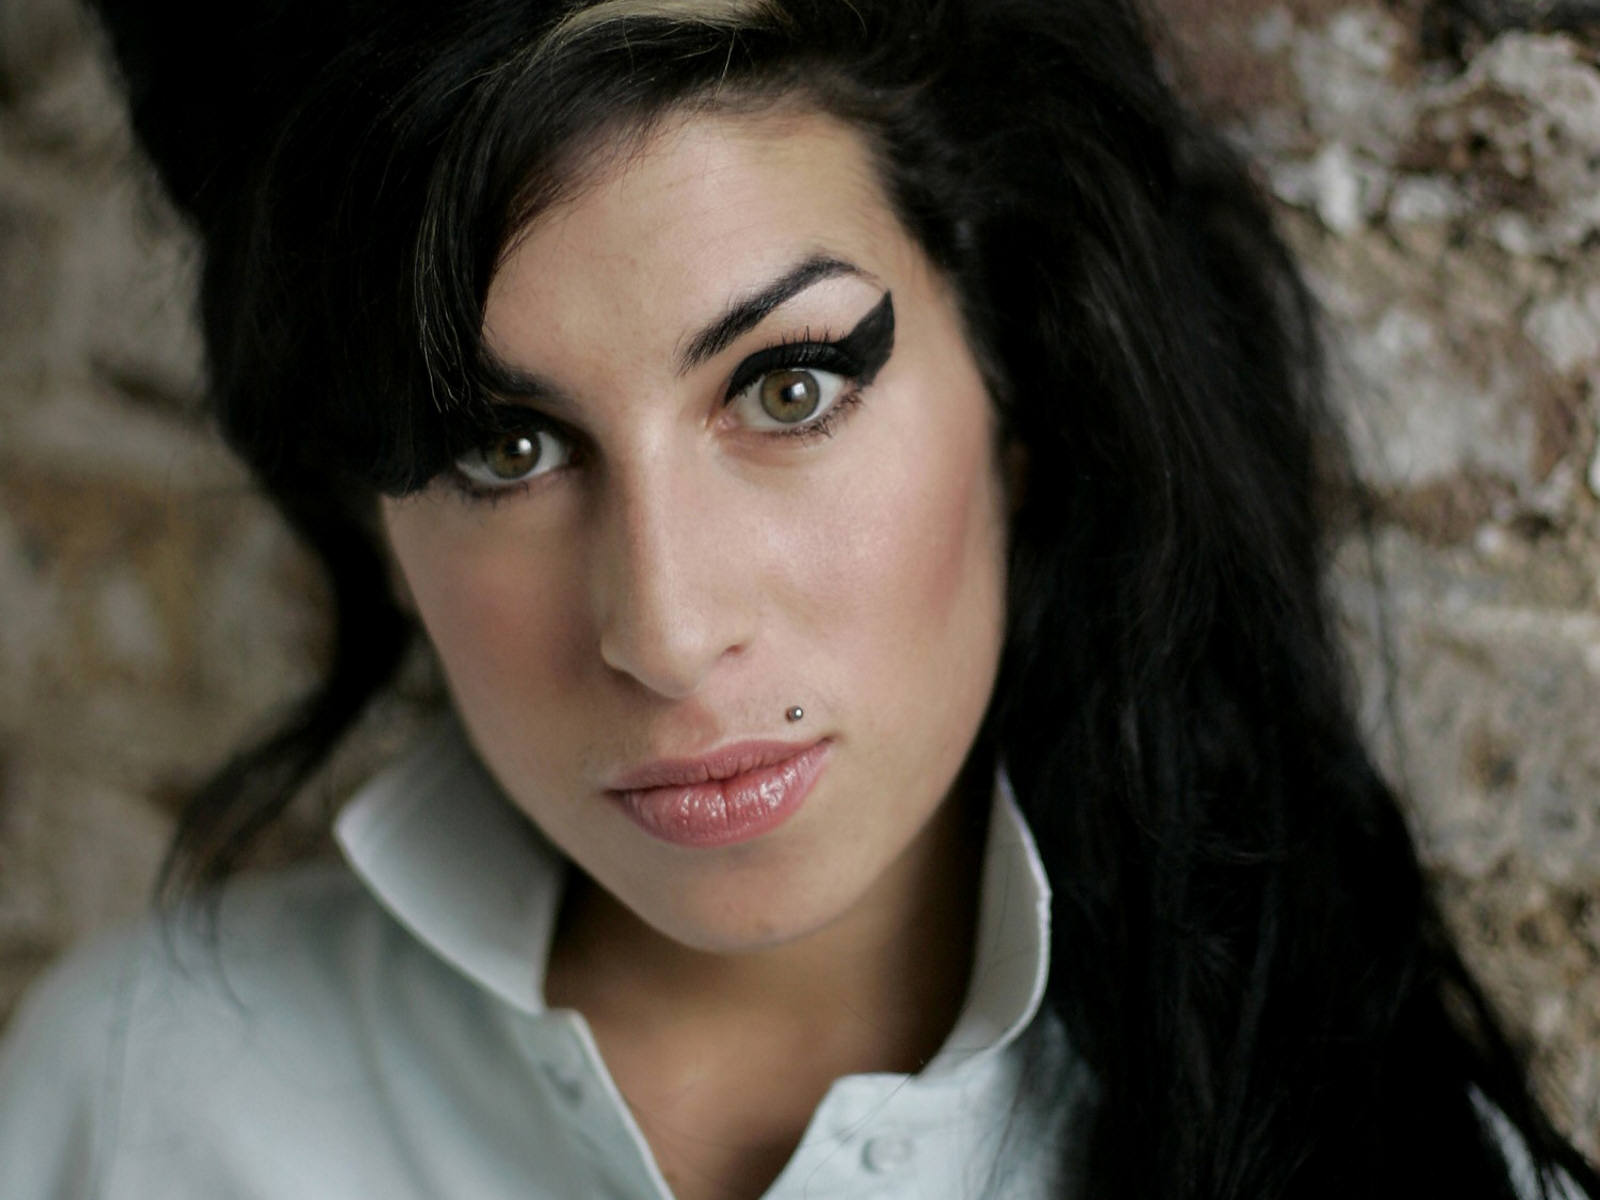 Winehouse could very well be Amy Winehouse